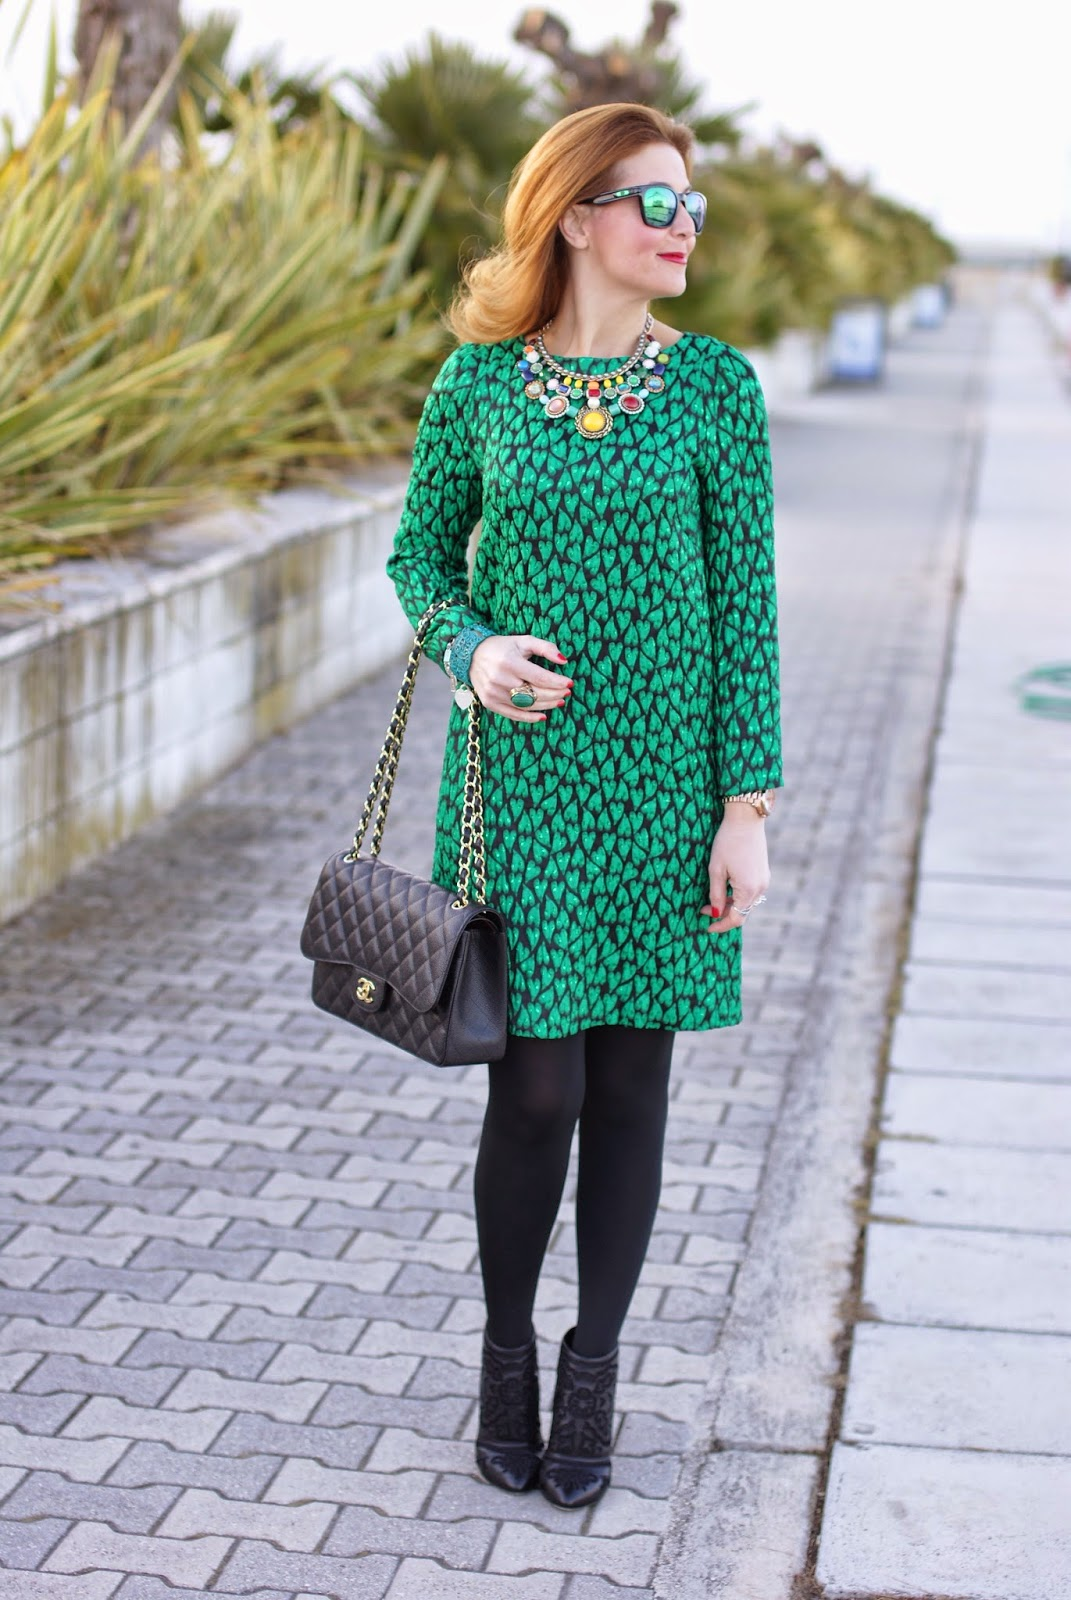 c2d8ee2beed5 Mauro Grifoni dress Oakley sunglasses Chanel bag Dolce & Gabbana ankle boots